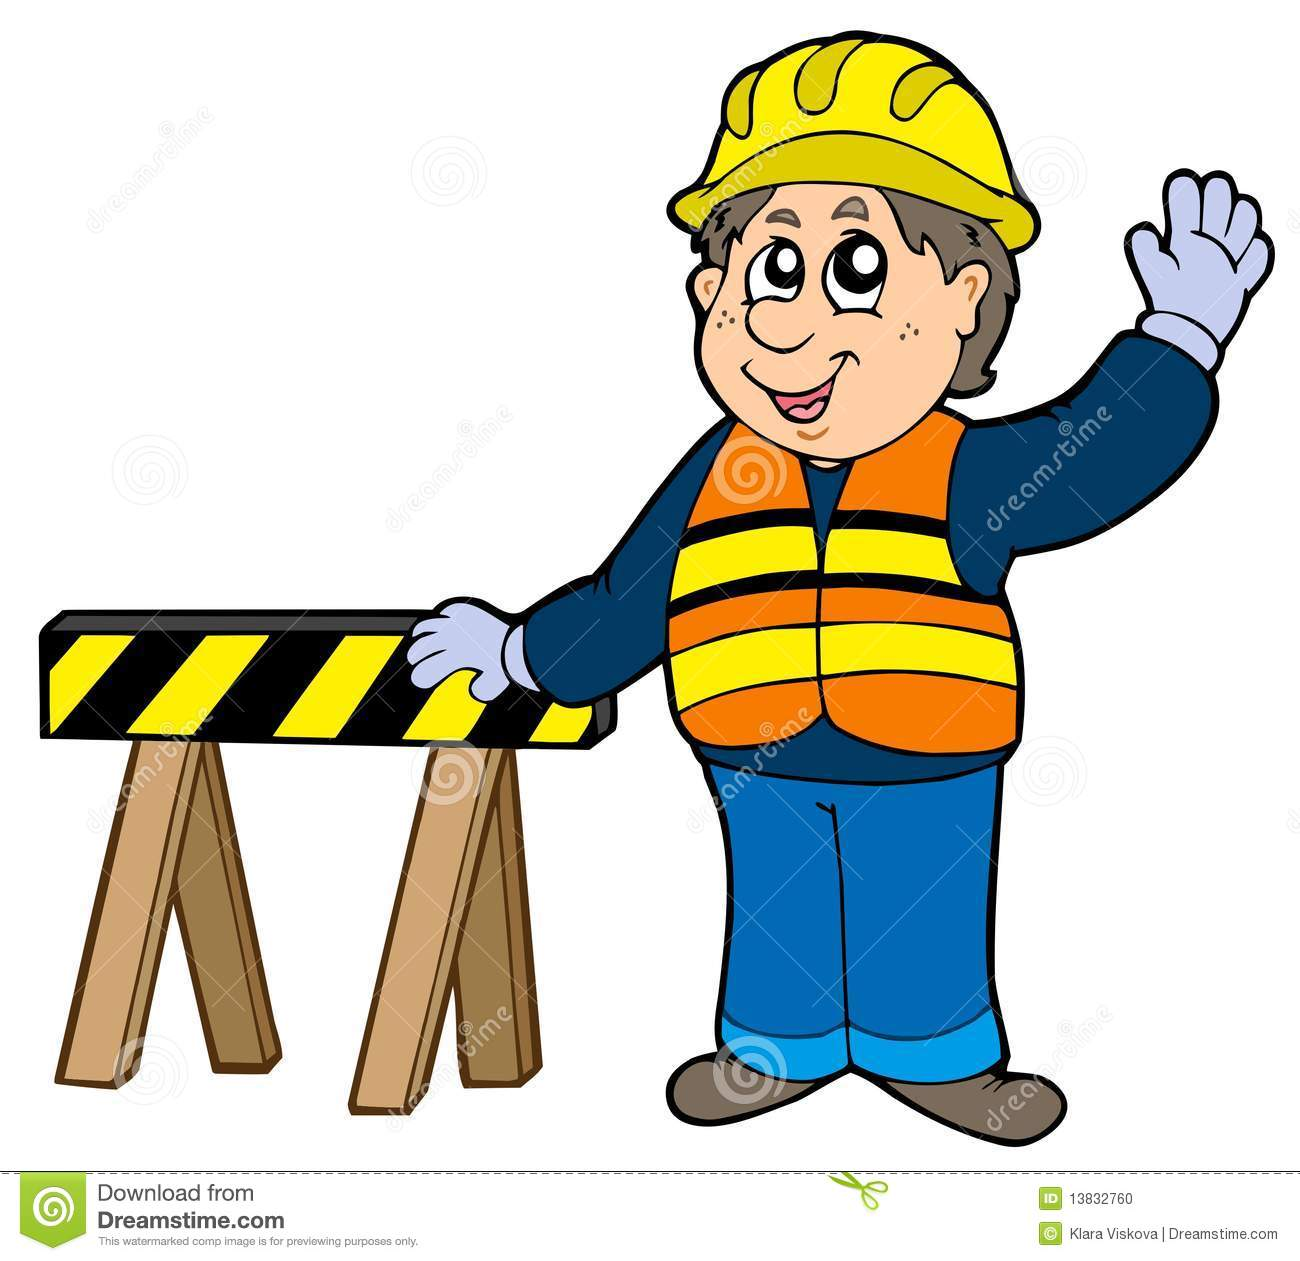 Cartoon Construction Worker Stock Vector - Illustration of ...